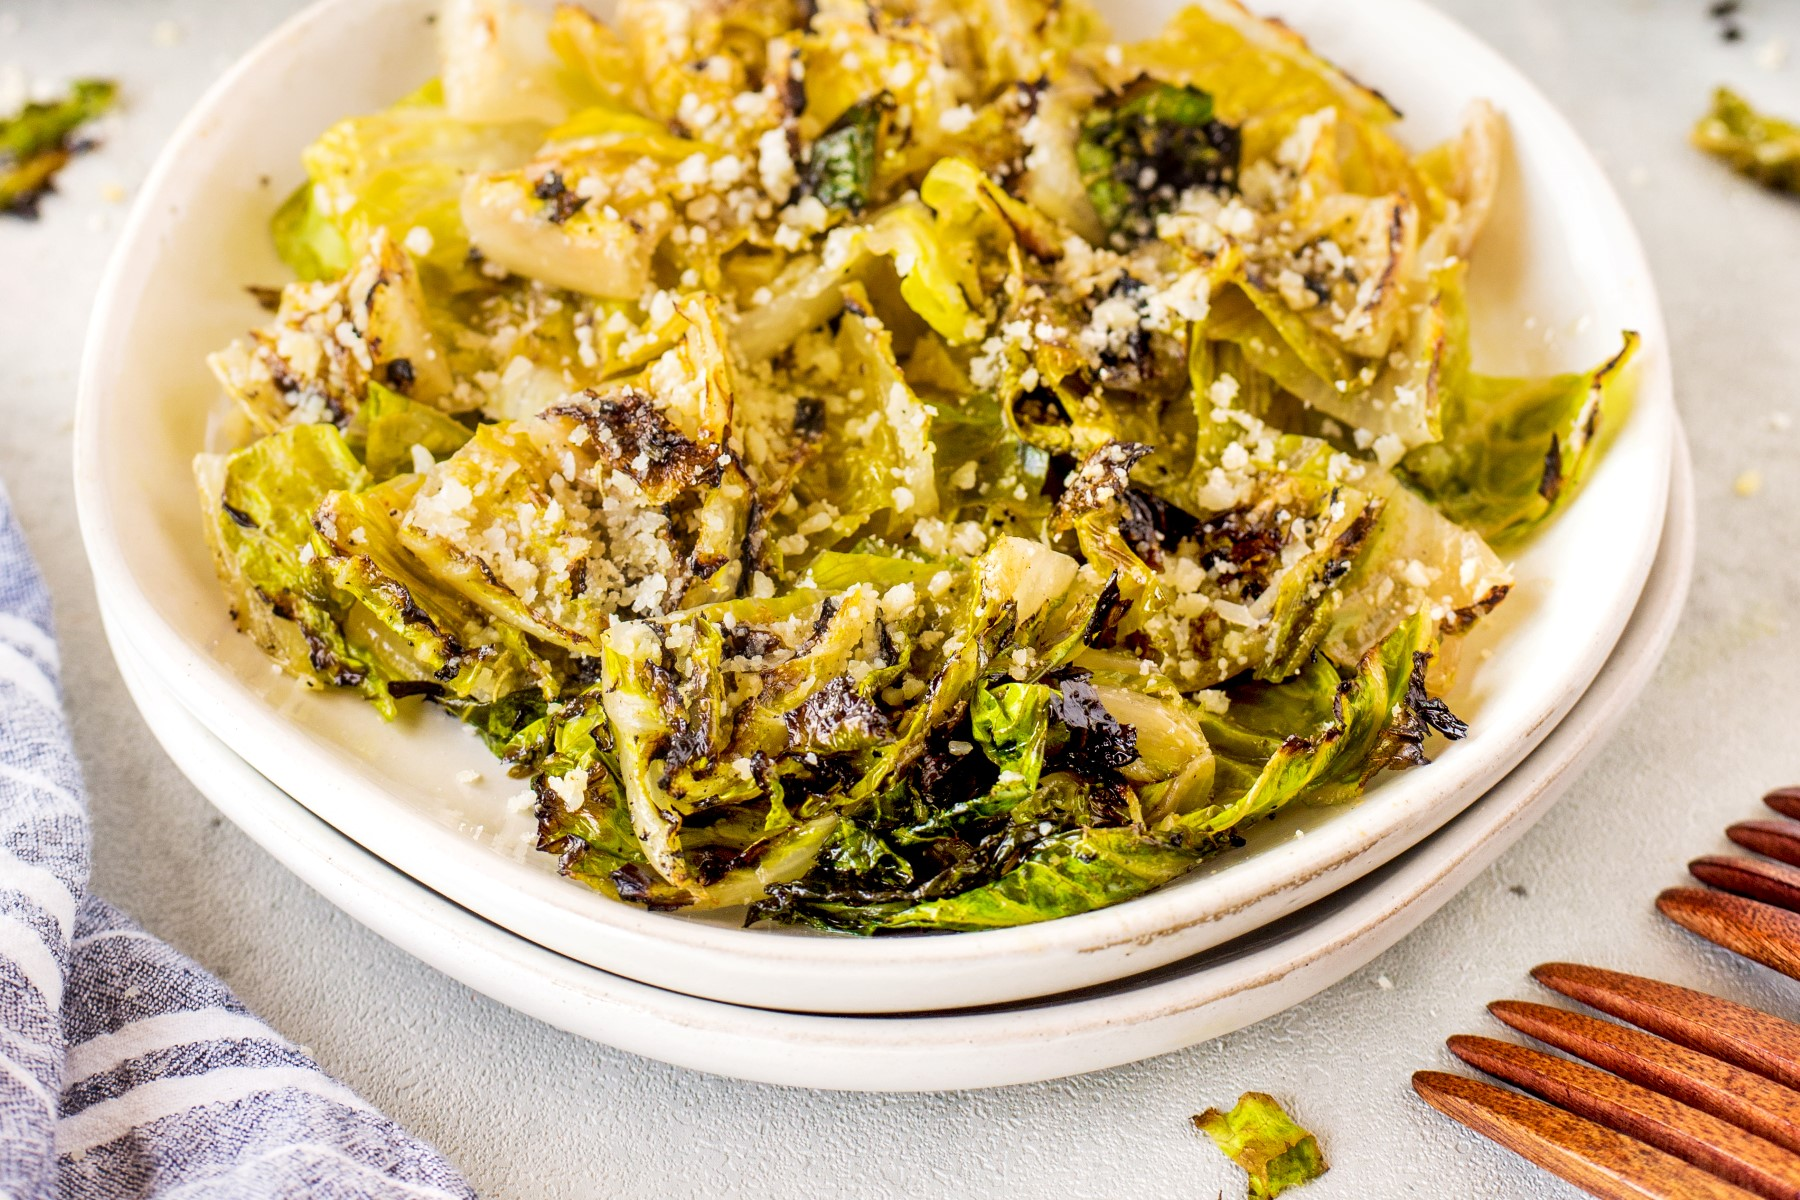 Grilled romaine lettuce chopped in a white bowl with asiago cheese sprinkled on top